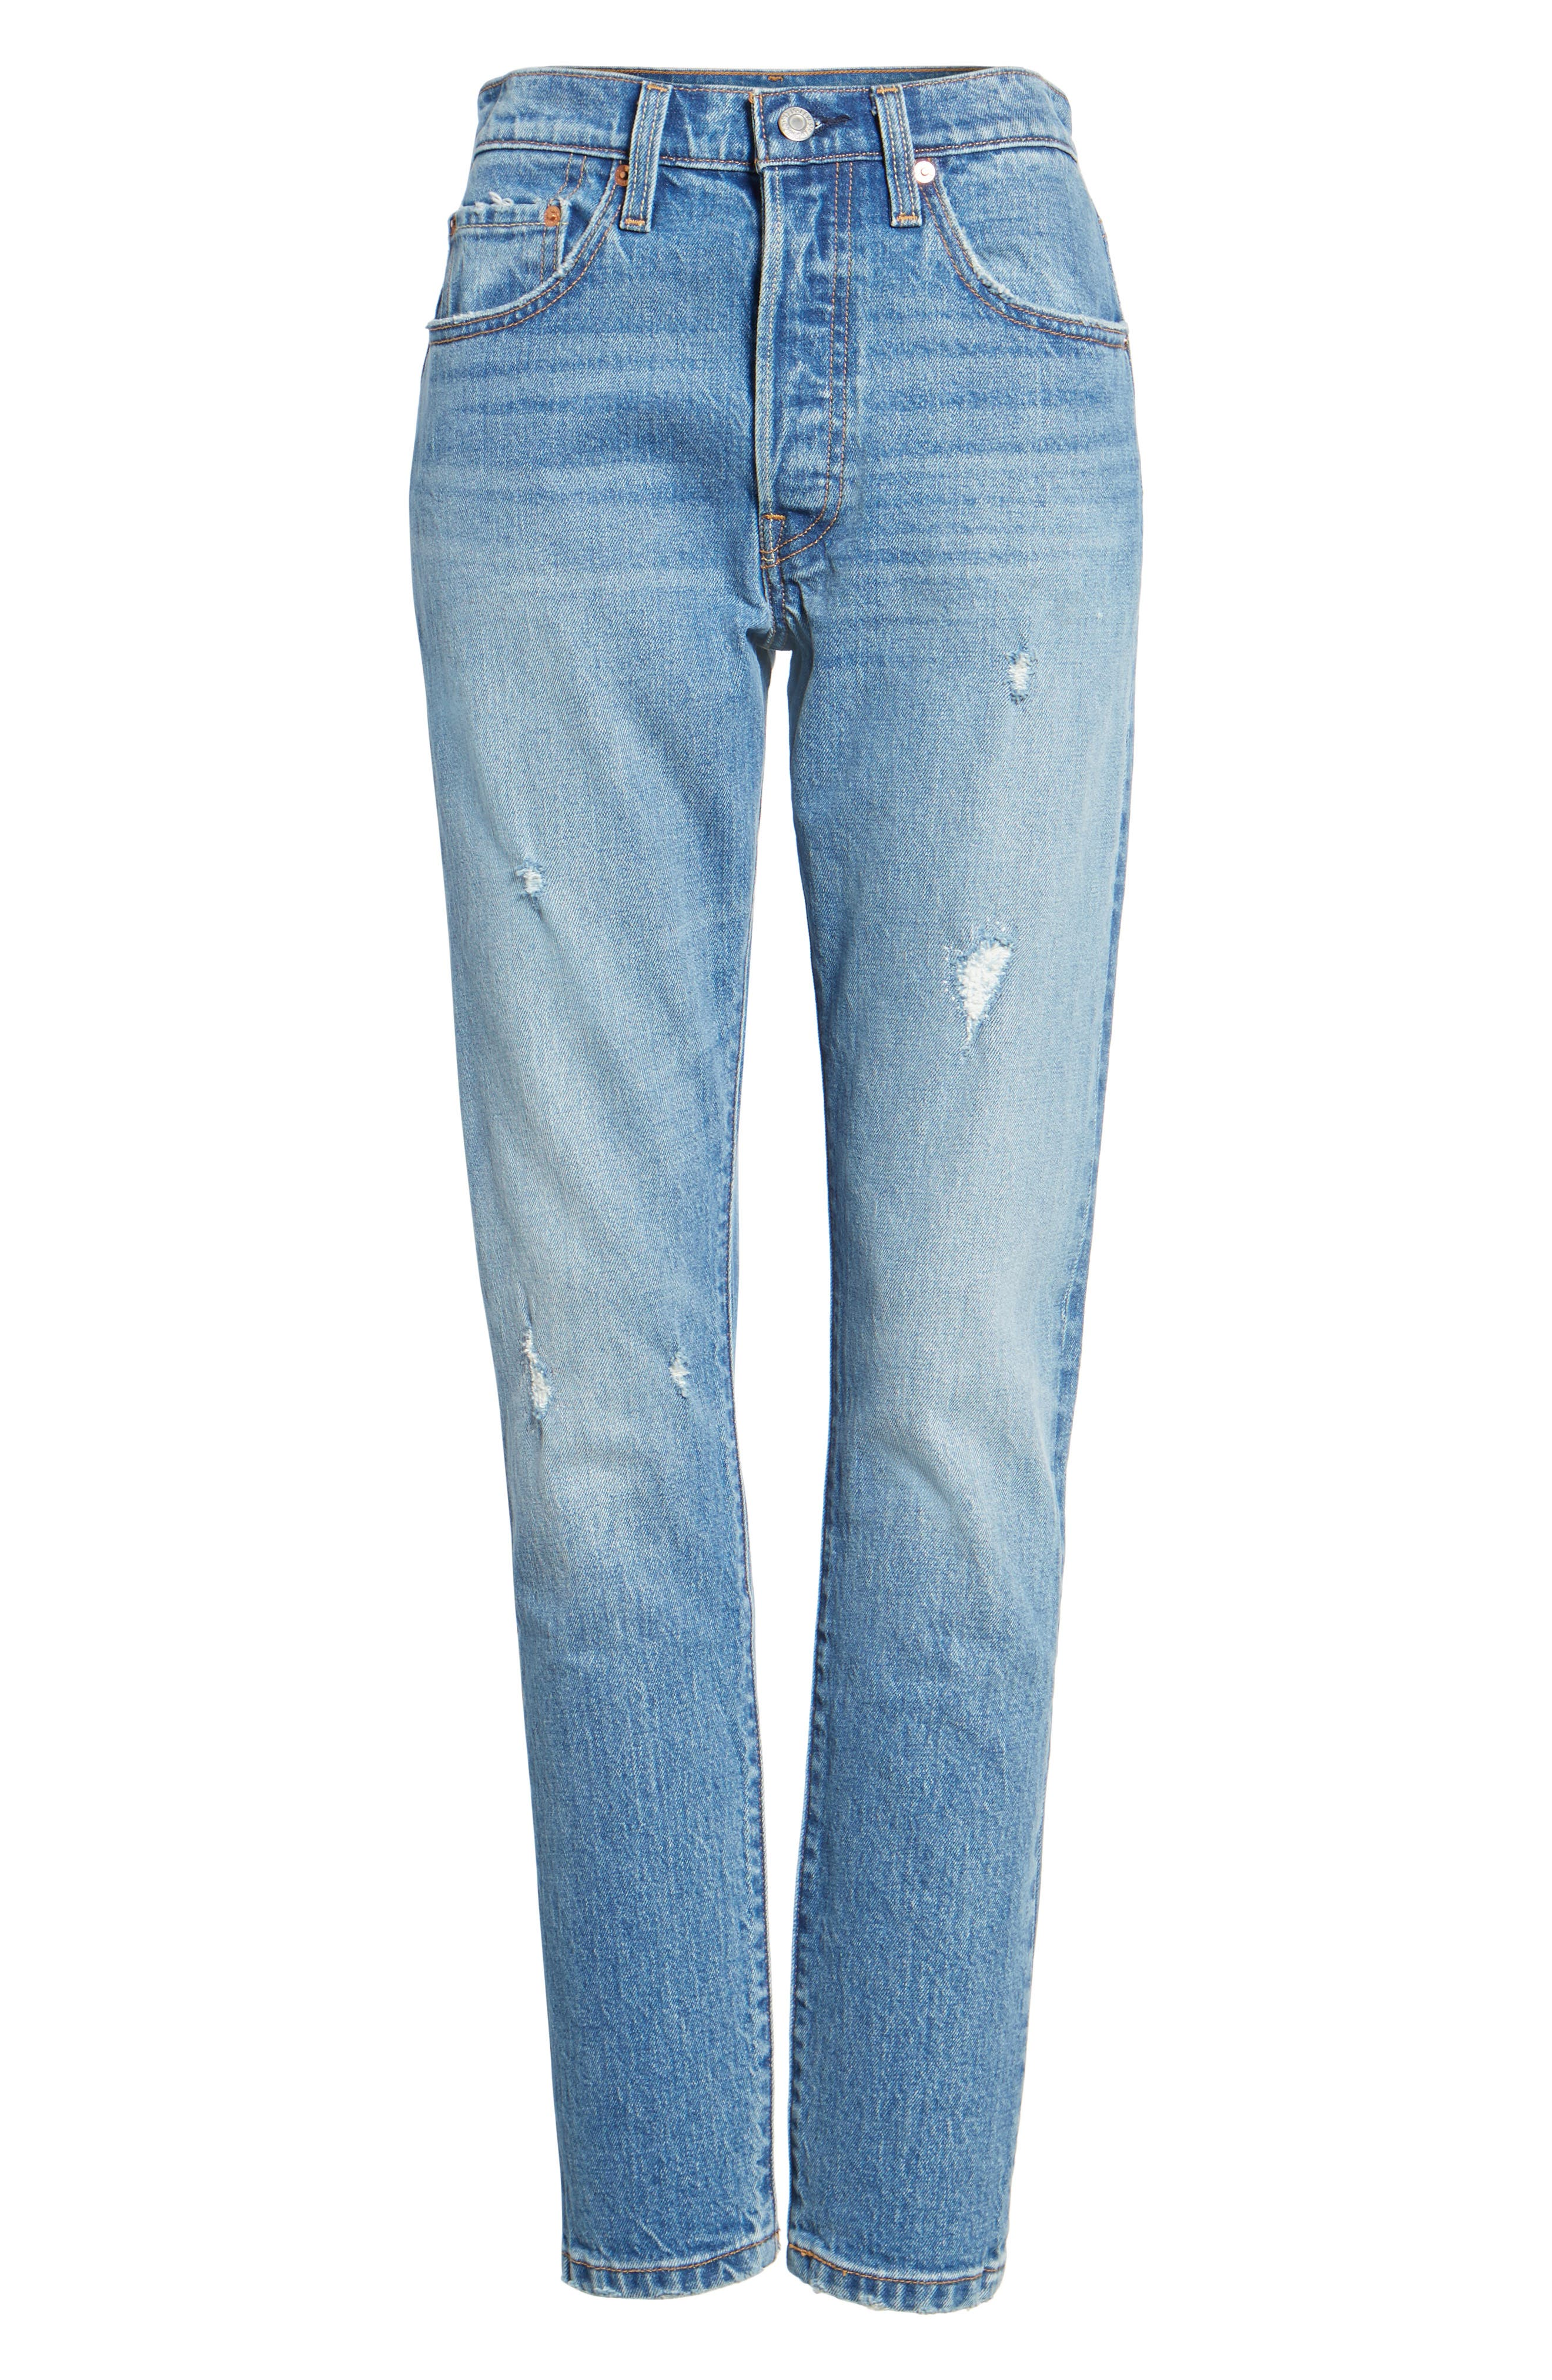 501 High Waist Skinny Jeans,                             Alternate thumbnail 6, color,